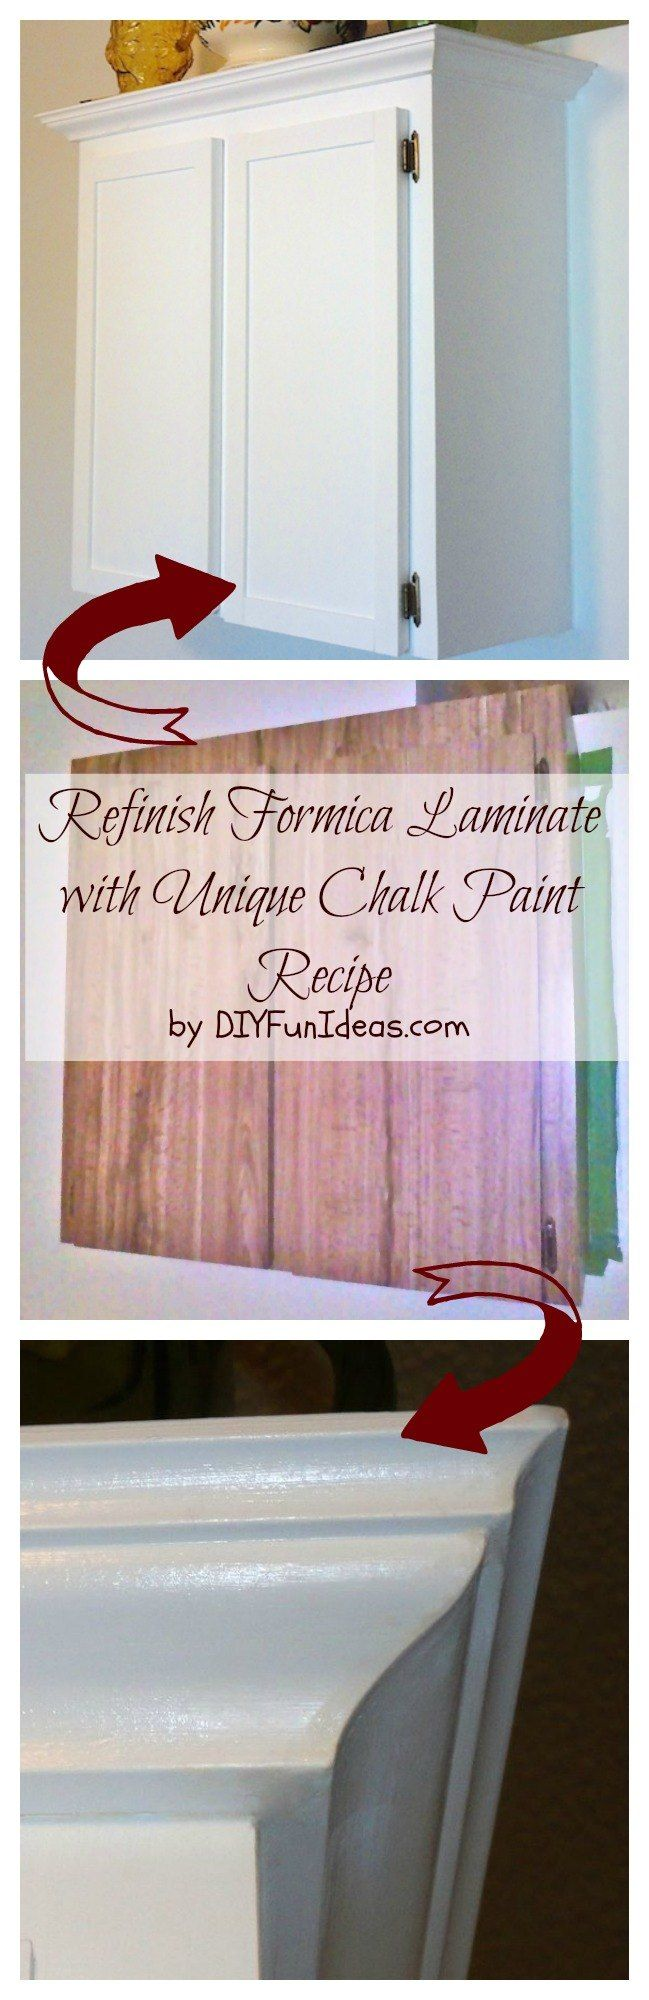 REFINISH FORMICA LAMINATE WITH UNIQUE CHALK PAINT RECIPE. Turn your old formica laminate into beautiful custom cabinet with this unique chalk paint recipe. By Jenise @ DIYFUNIDEAS.COM ...........Most popular pins!